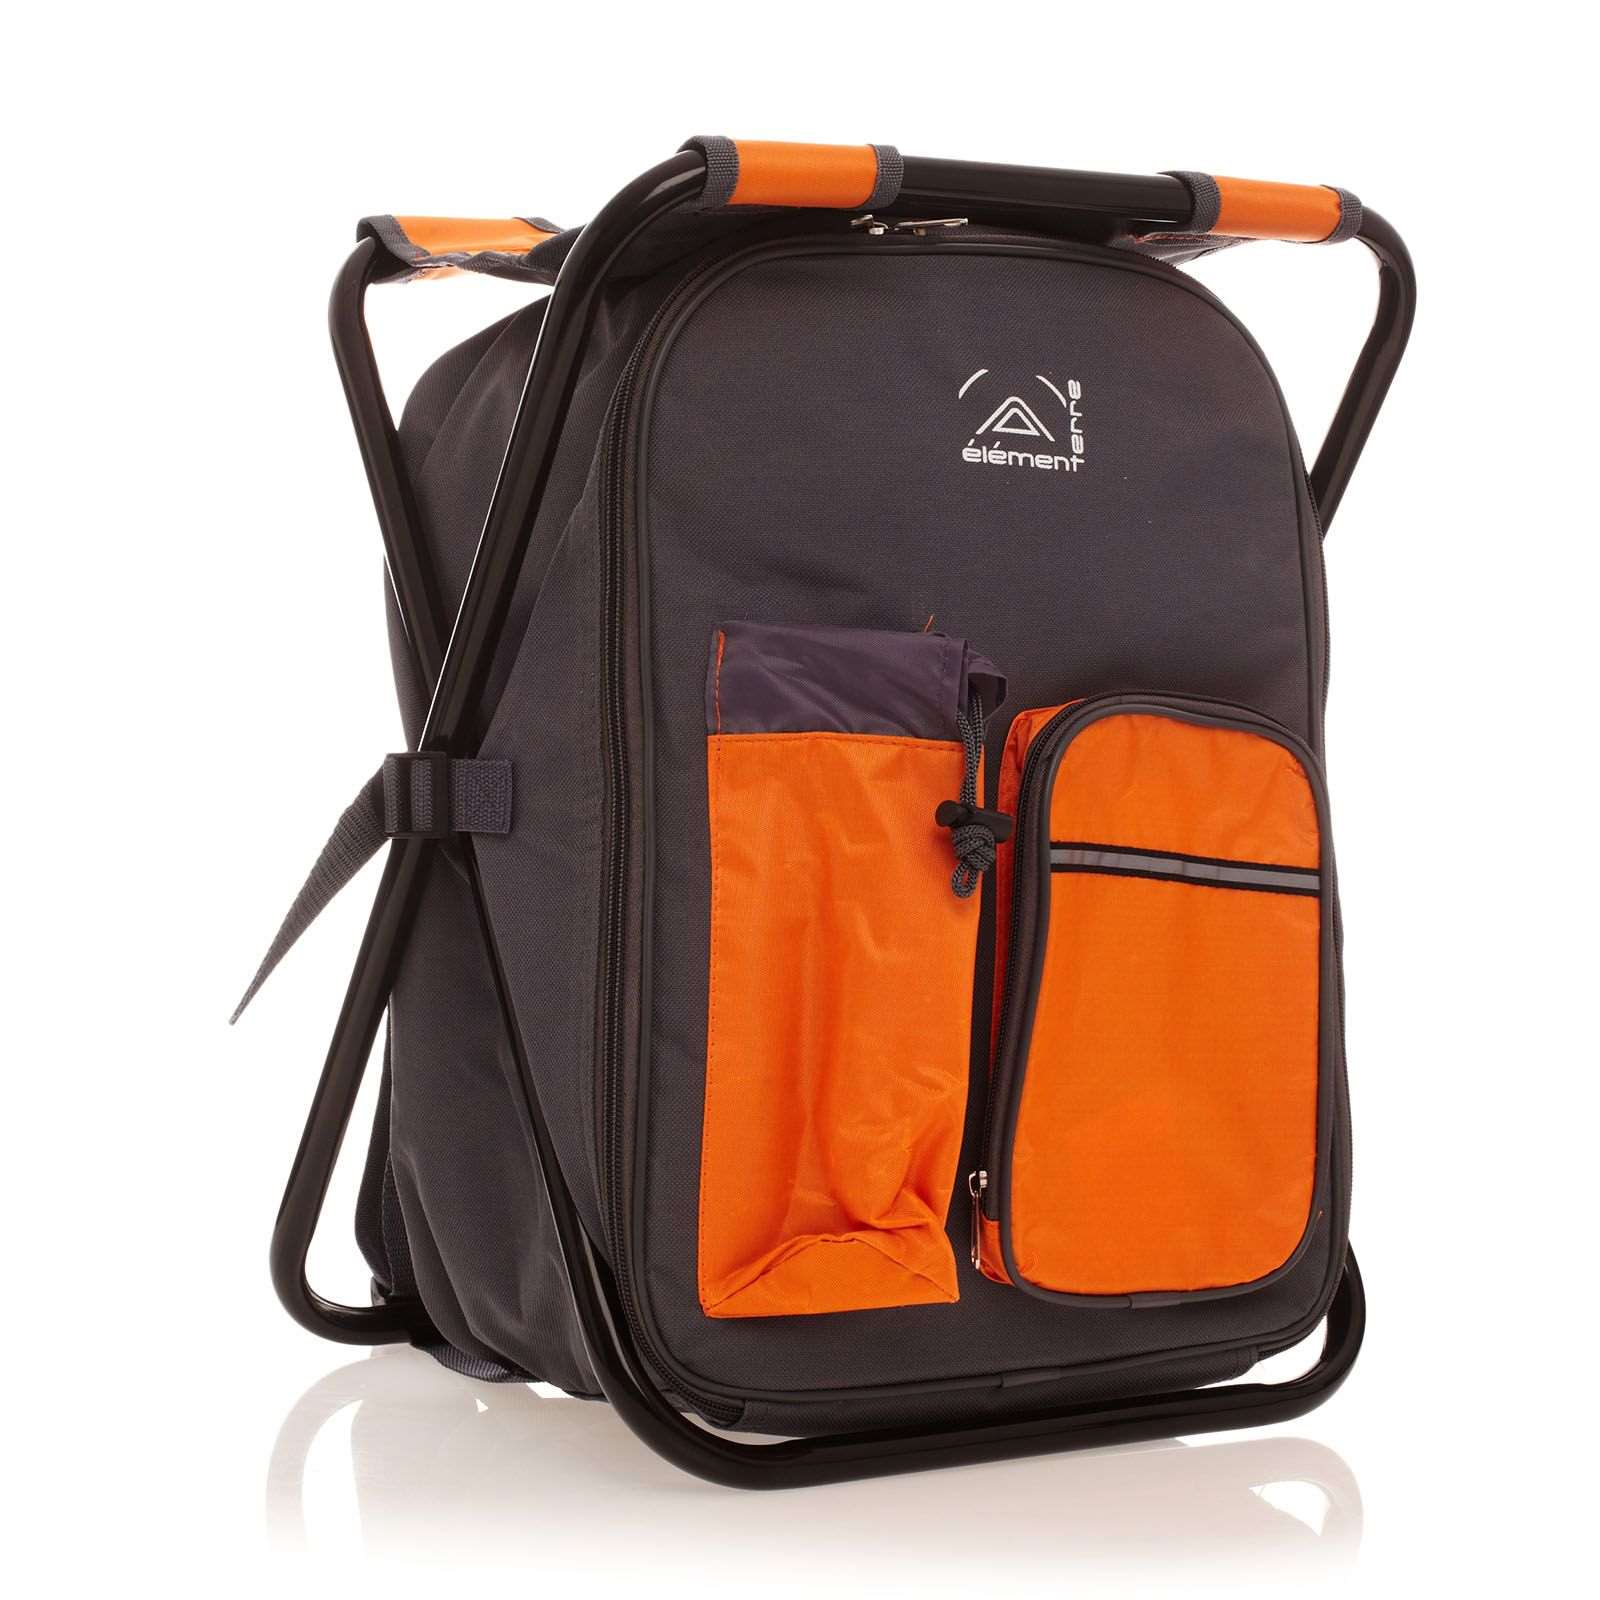 Elementerre cooly sac dos glaci re gris et orange brandalley - Sac a dos glaciere ...